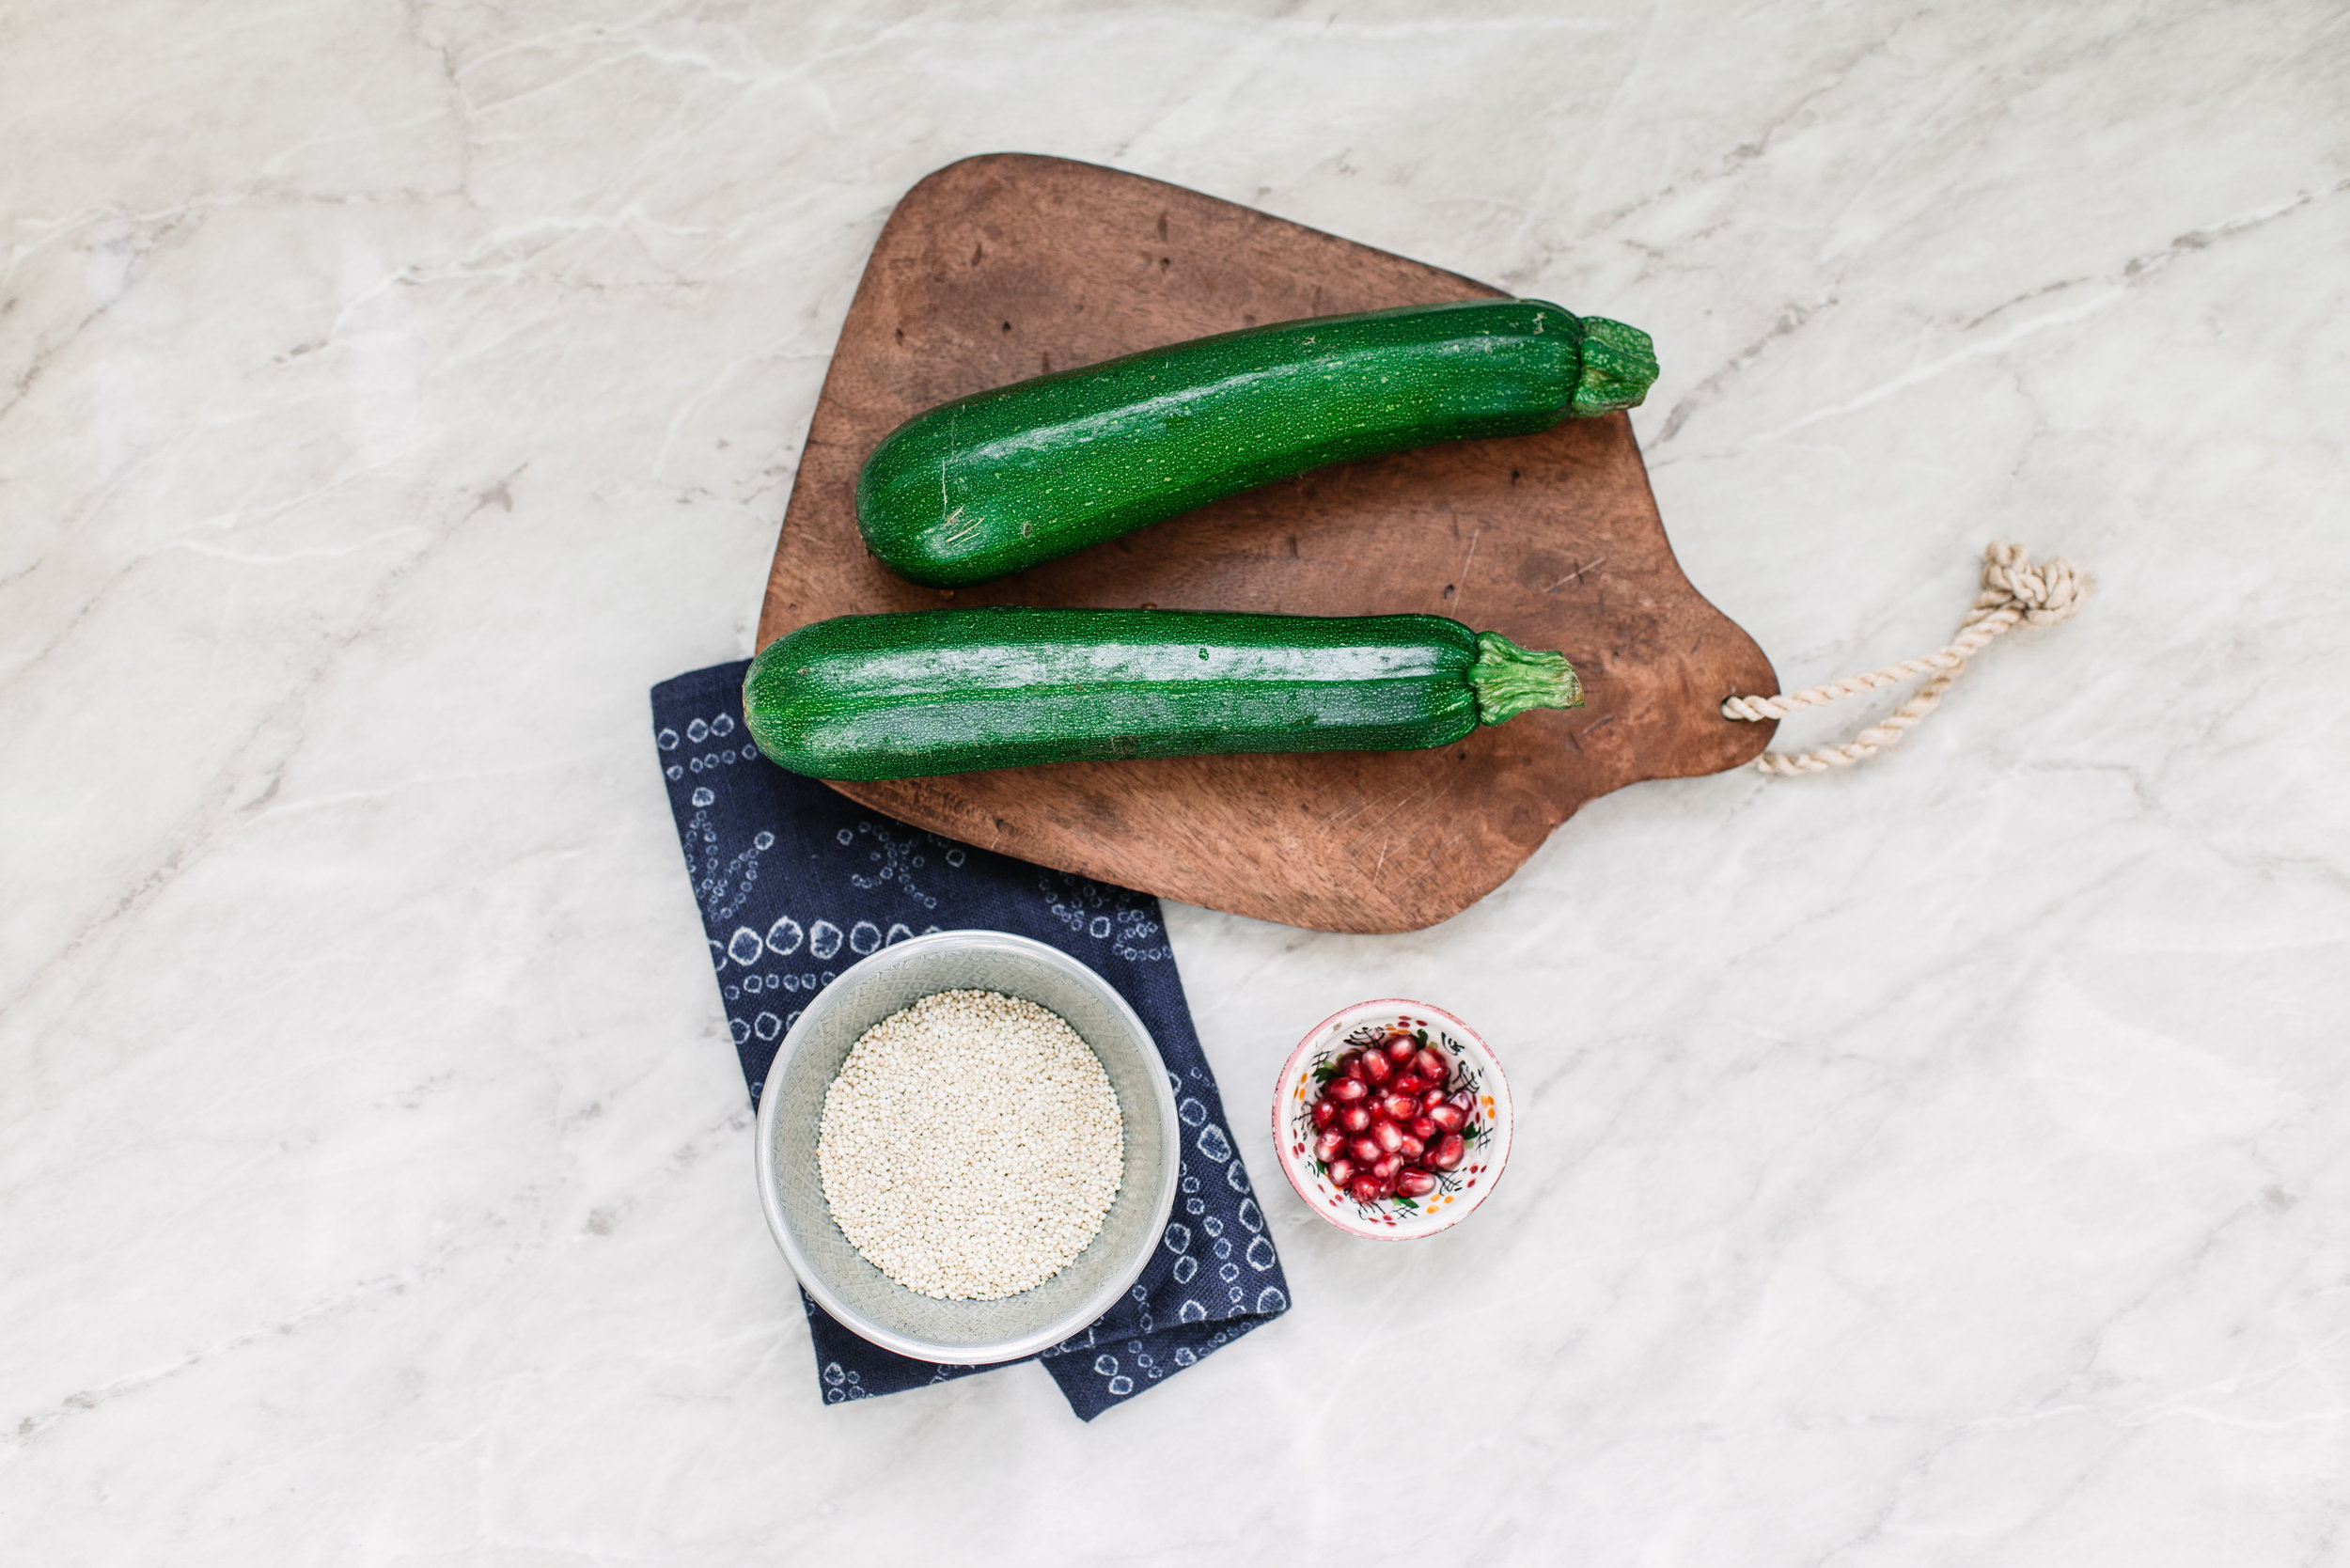 Paper_and_Moon_Louise_Dockery_quinoa_date_pomegranate_stuffed_courgette_zuccini.jpg